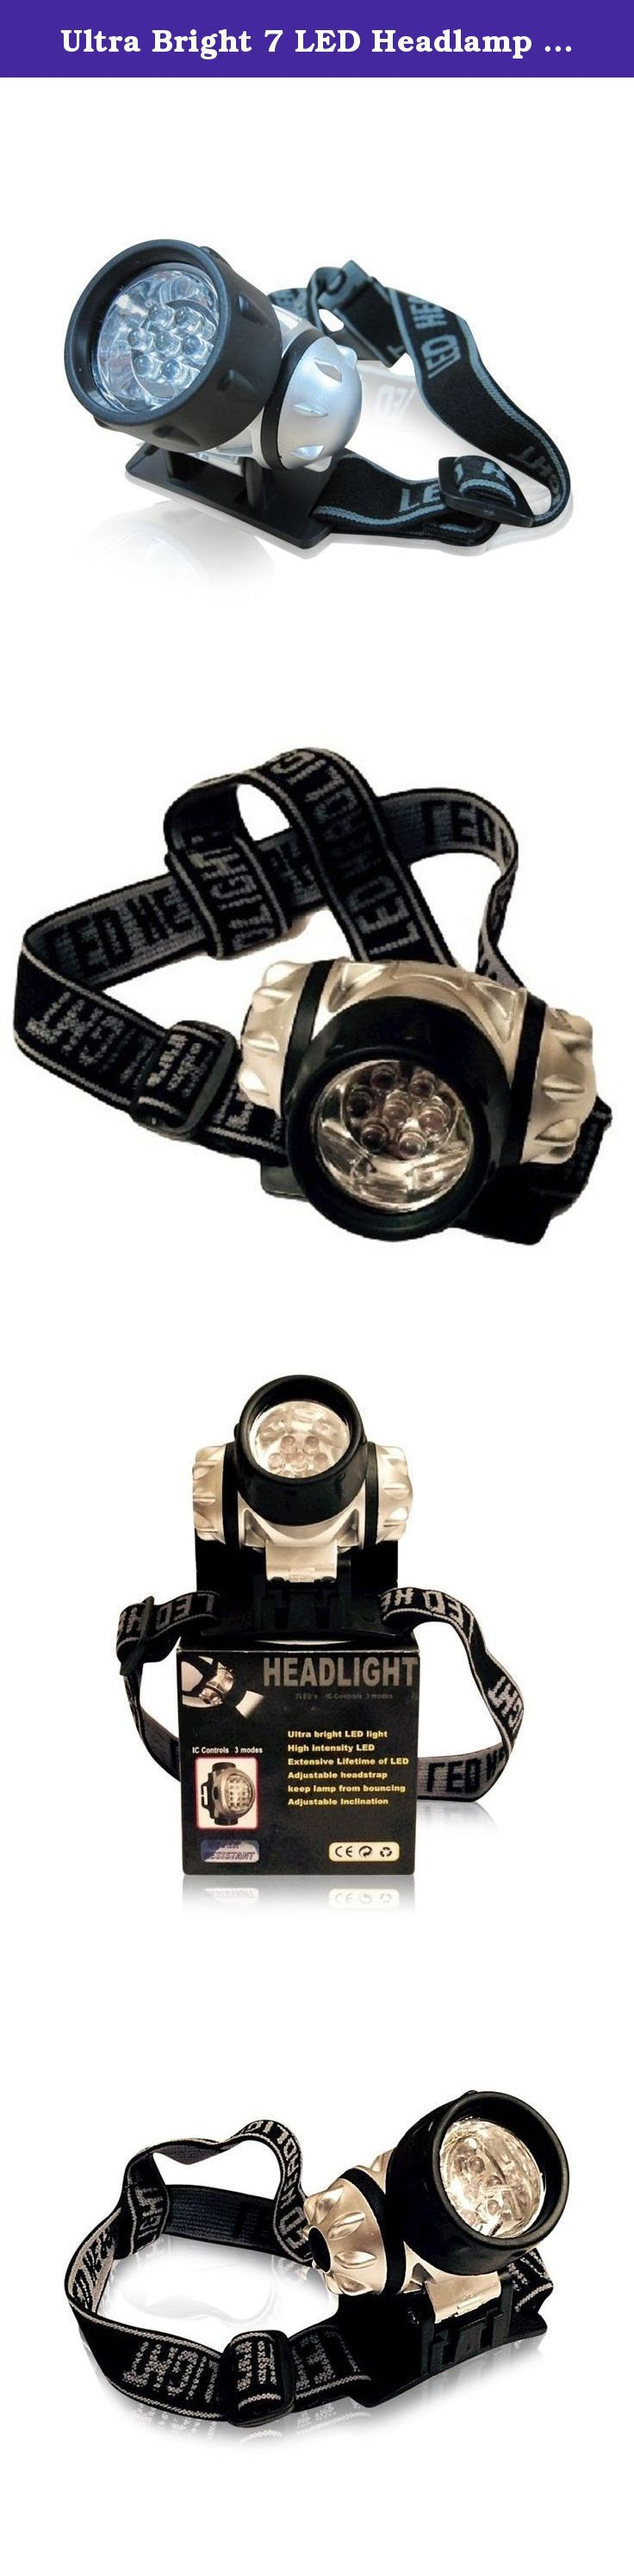 Ultra Bright 7 LED Headlamp - Night Vision Headlight - High Intensity - Comfortable - Water Resistant - Long Battery Life - Great for Running, Camping, Fishing, Reading and More - Tilting Lights - Adjustable Head Strap - Lifetime Guarantee!. Enjoy Great Hands-Free Lighting Versatility and Safely Illuminate your way in and out! Great to Illuminate your Night Time or Low Light Activities or Adventures. - Running, Walking, Biking - Hunting, Hiking - Fishing, Boating, Kayaking Easy to use and...